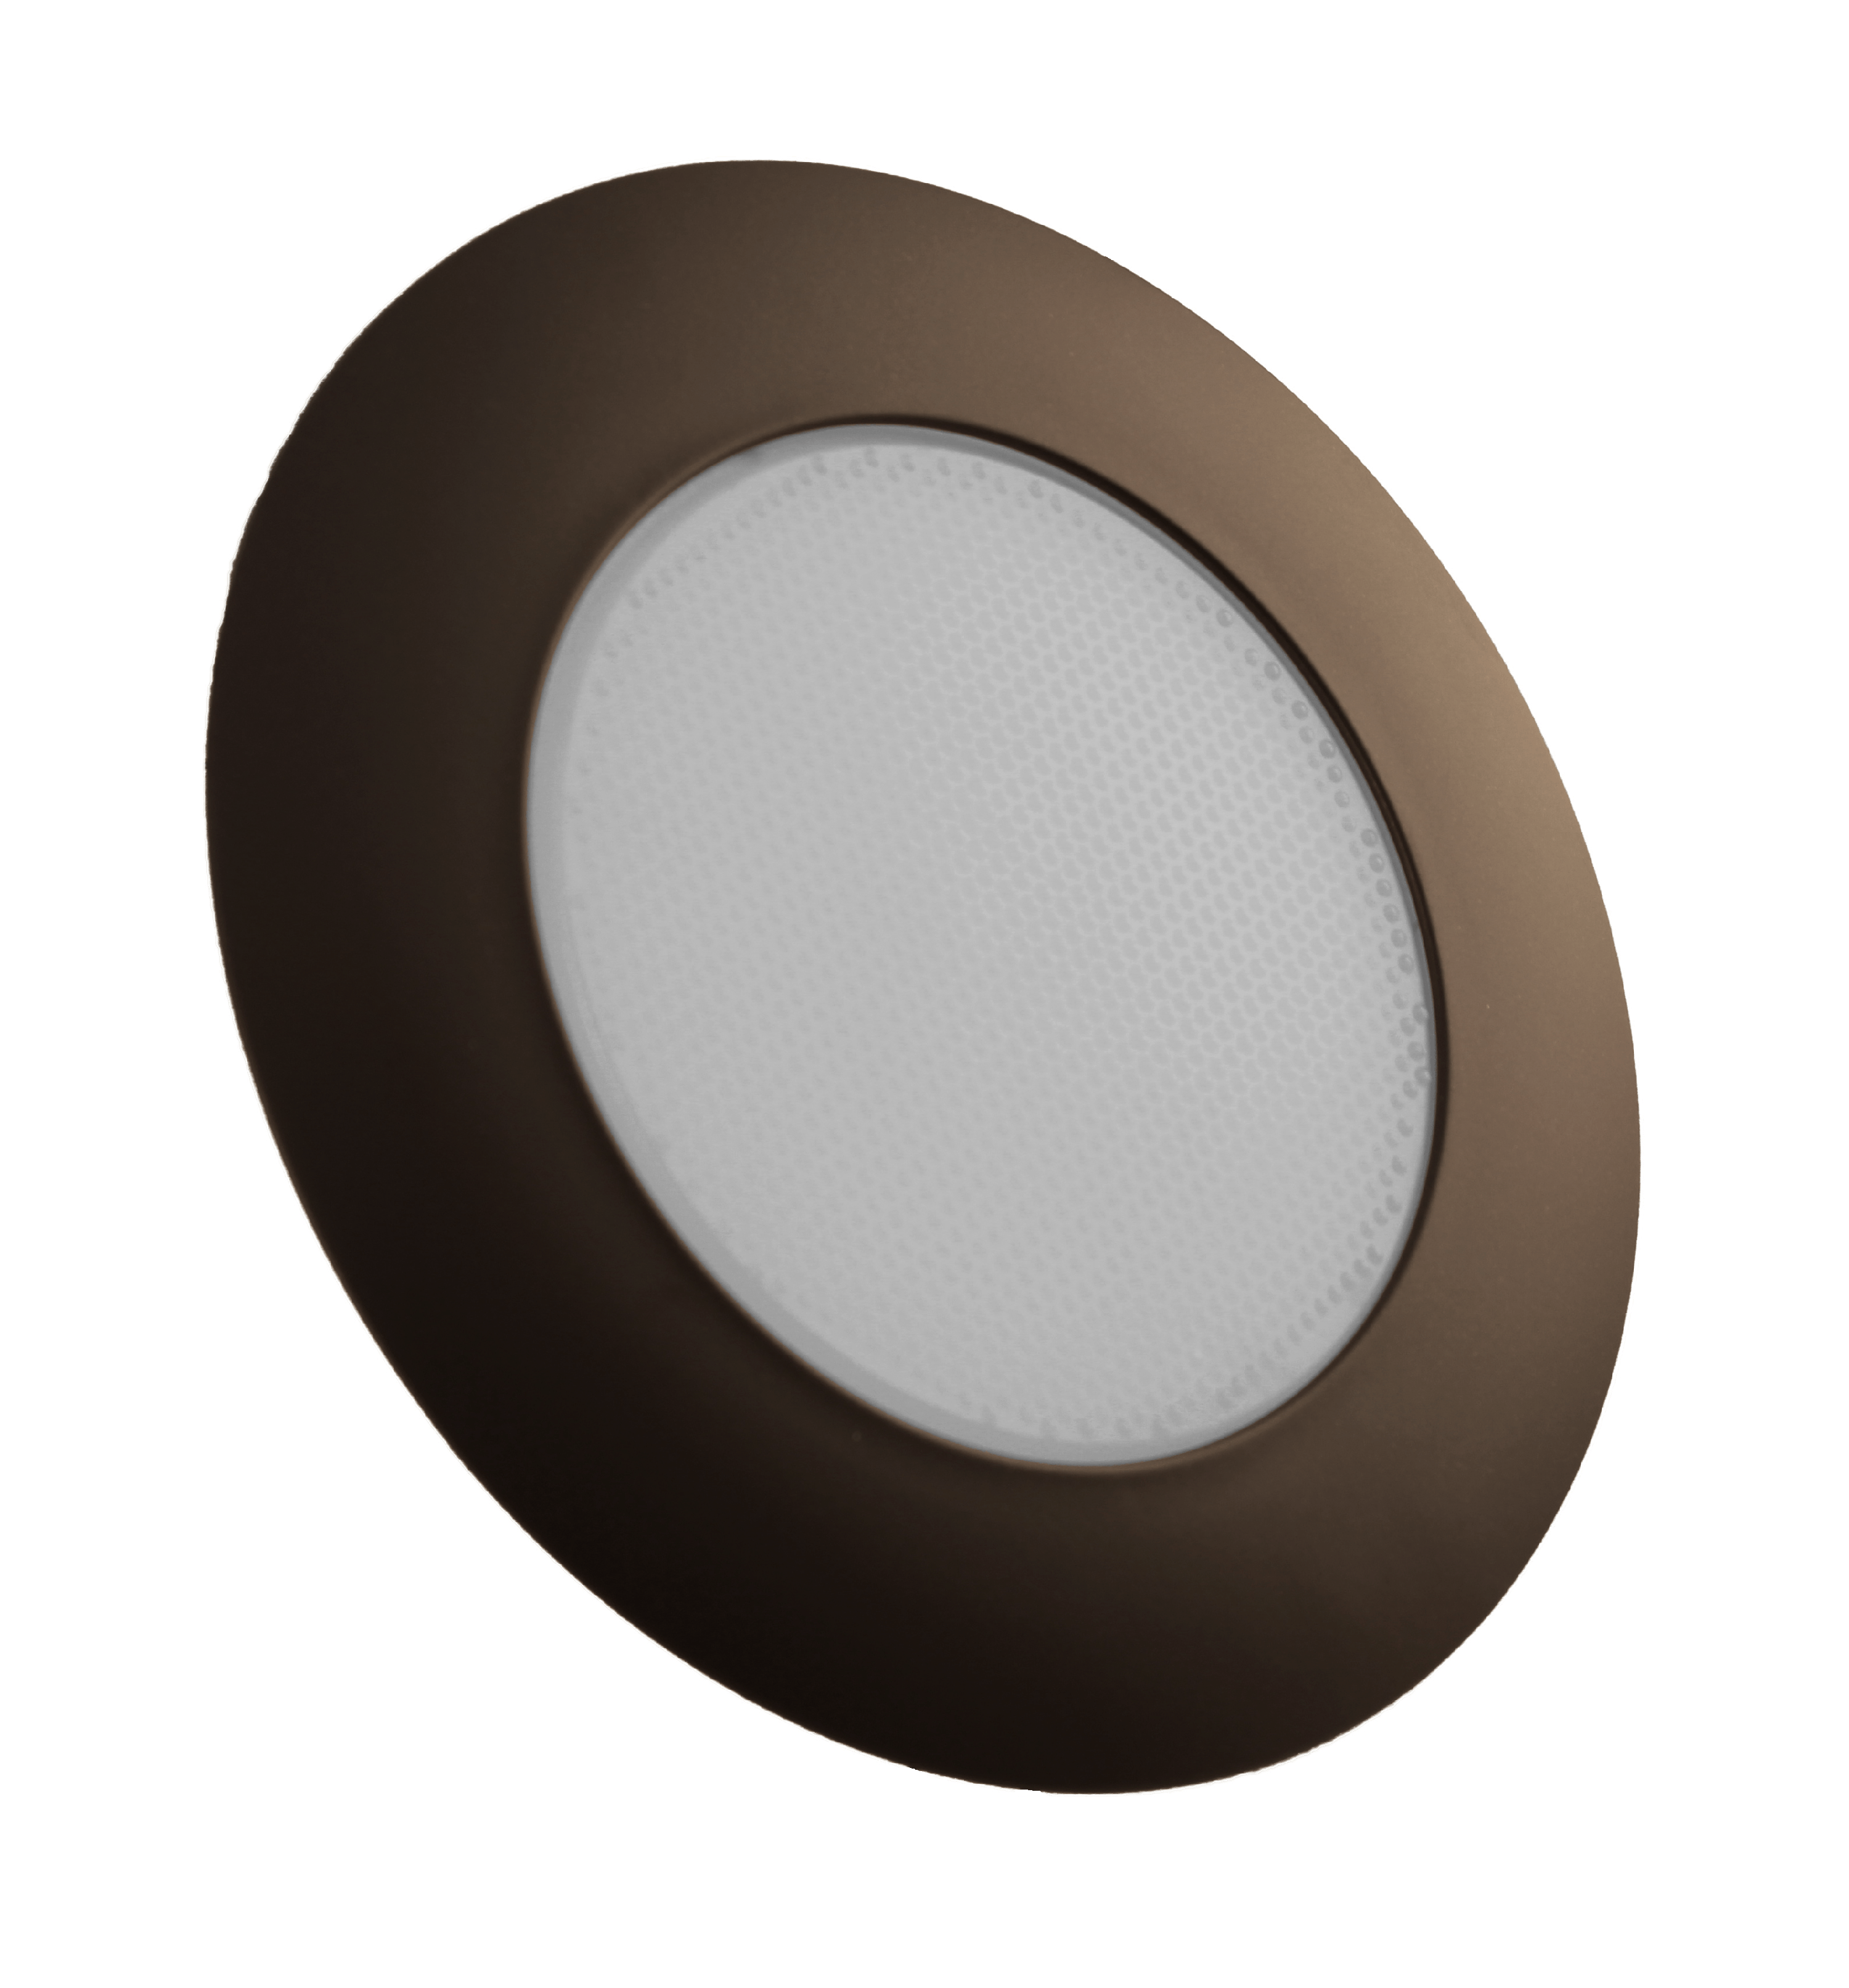 NICOR Lighting 6-Inch Recessed Lexan Shower Trim with Albalite Lens, Oil-Rubbed Bronze (17505OB)